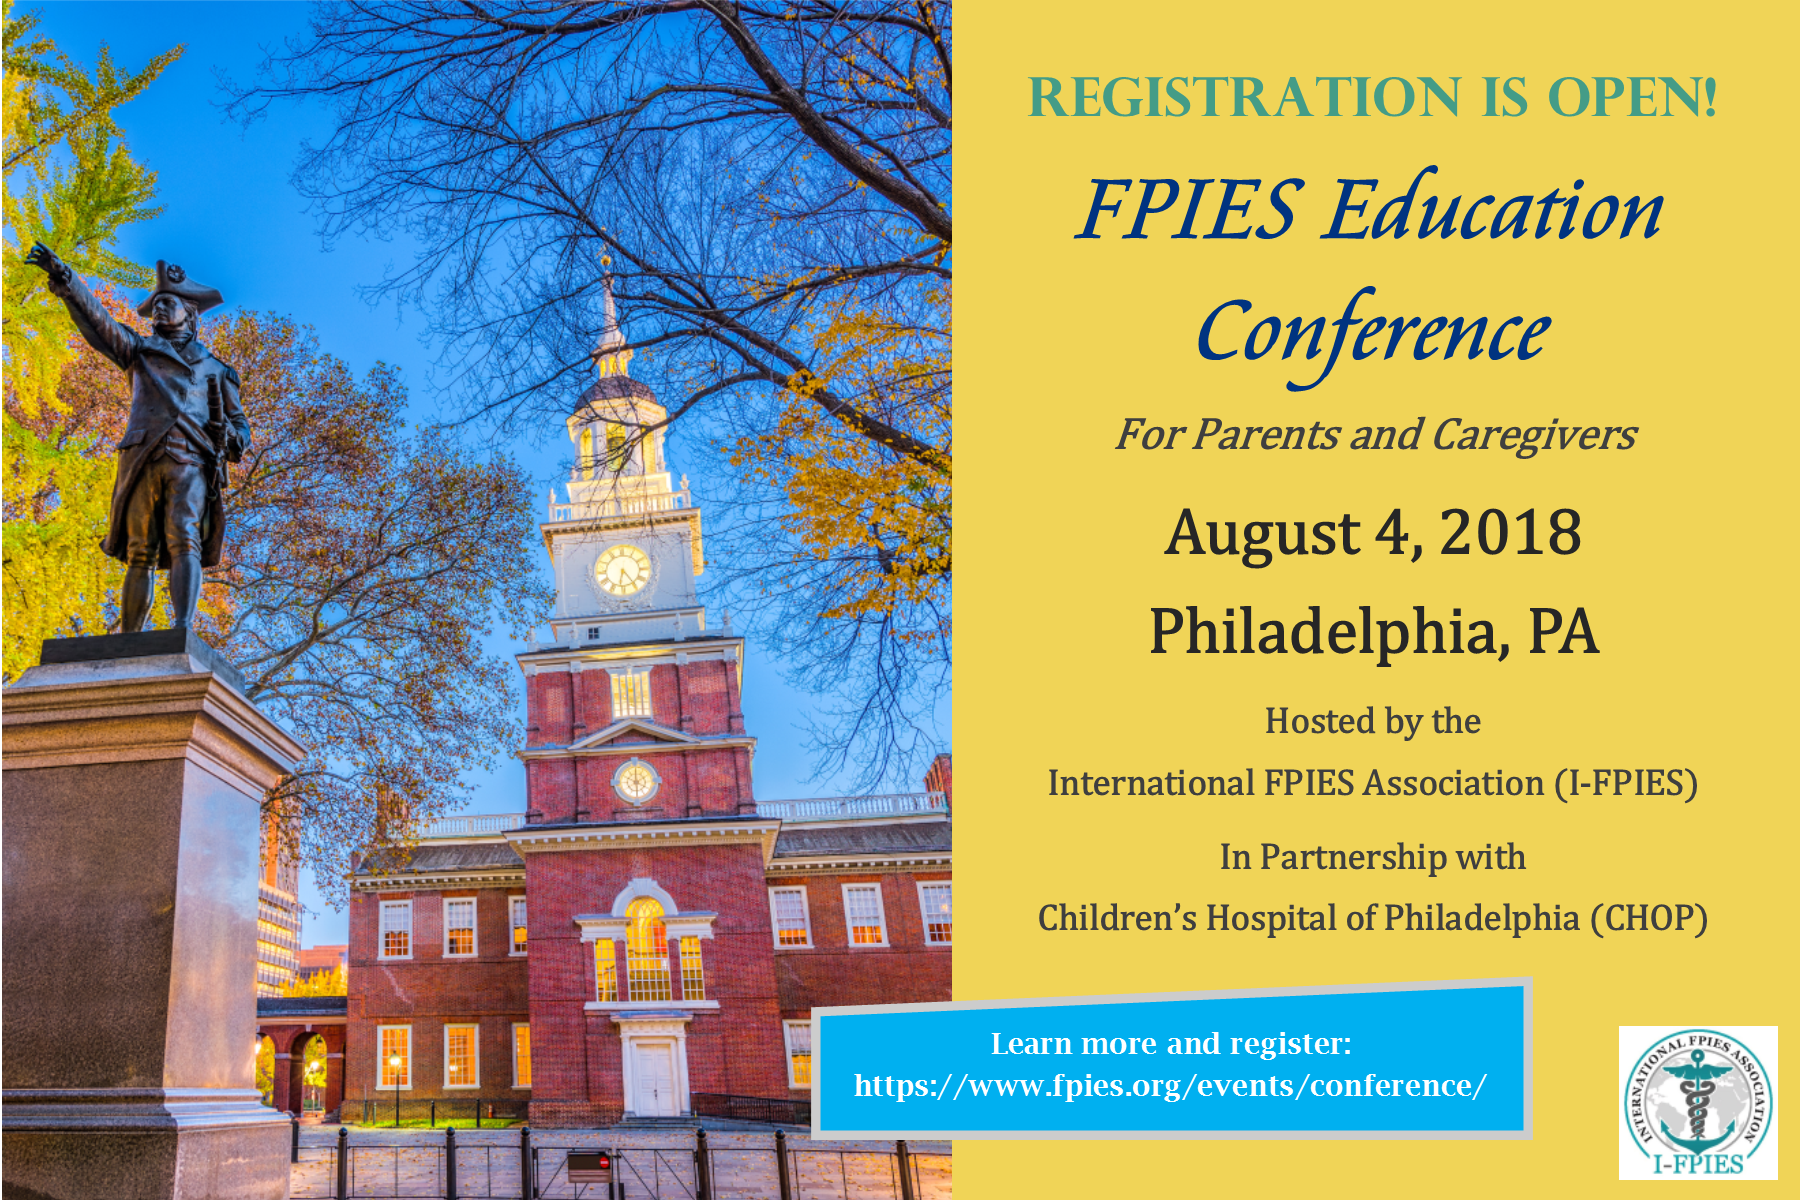 Registration Is Open for 2018 FPIES Education Conference!